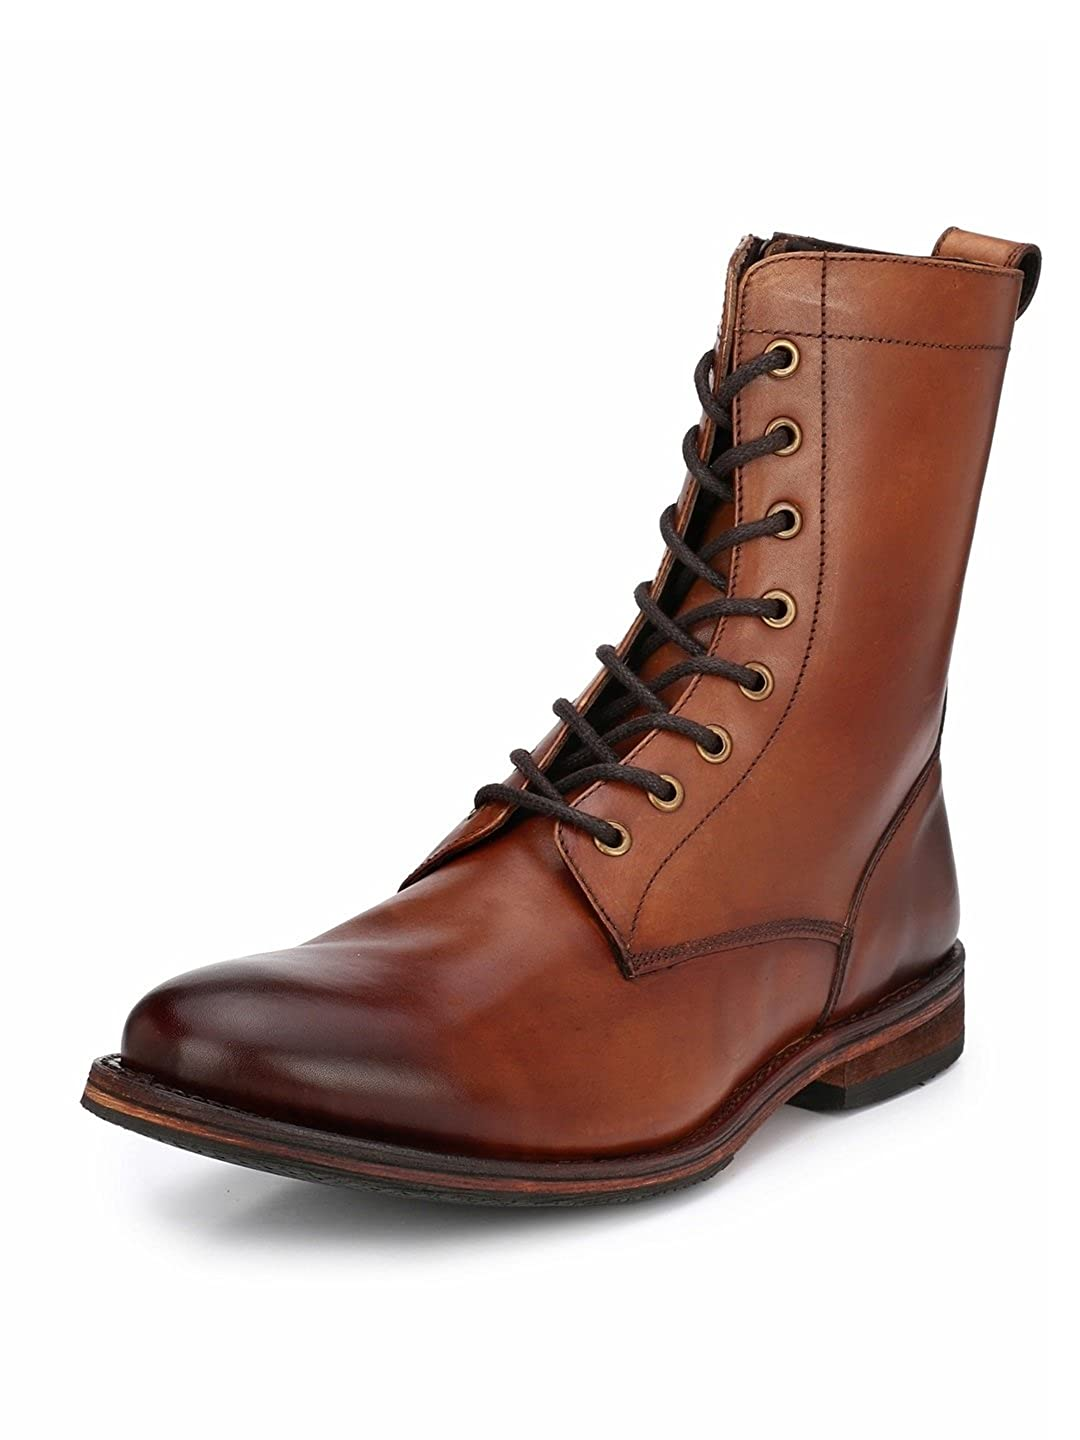 042ae105ffdda0 Harrykson London Men's Premium Andre Dark Cuir Leather Boots: Buy Online at  Low Prices in India - Amazon.in